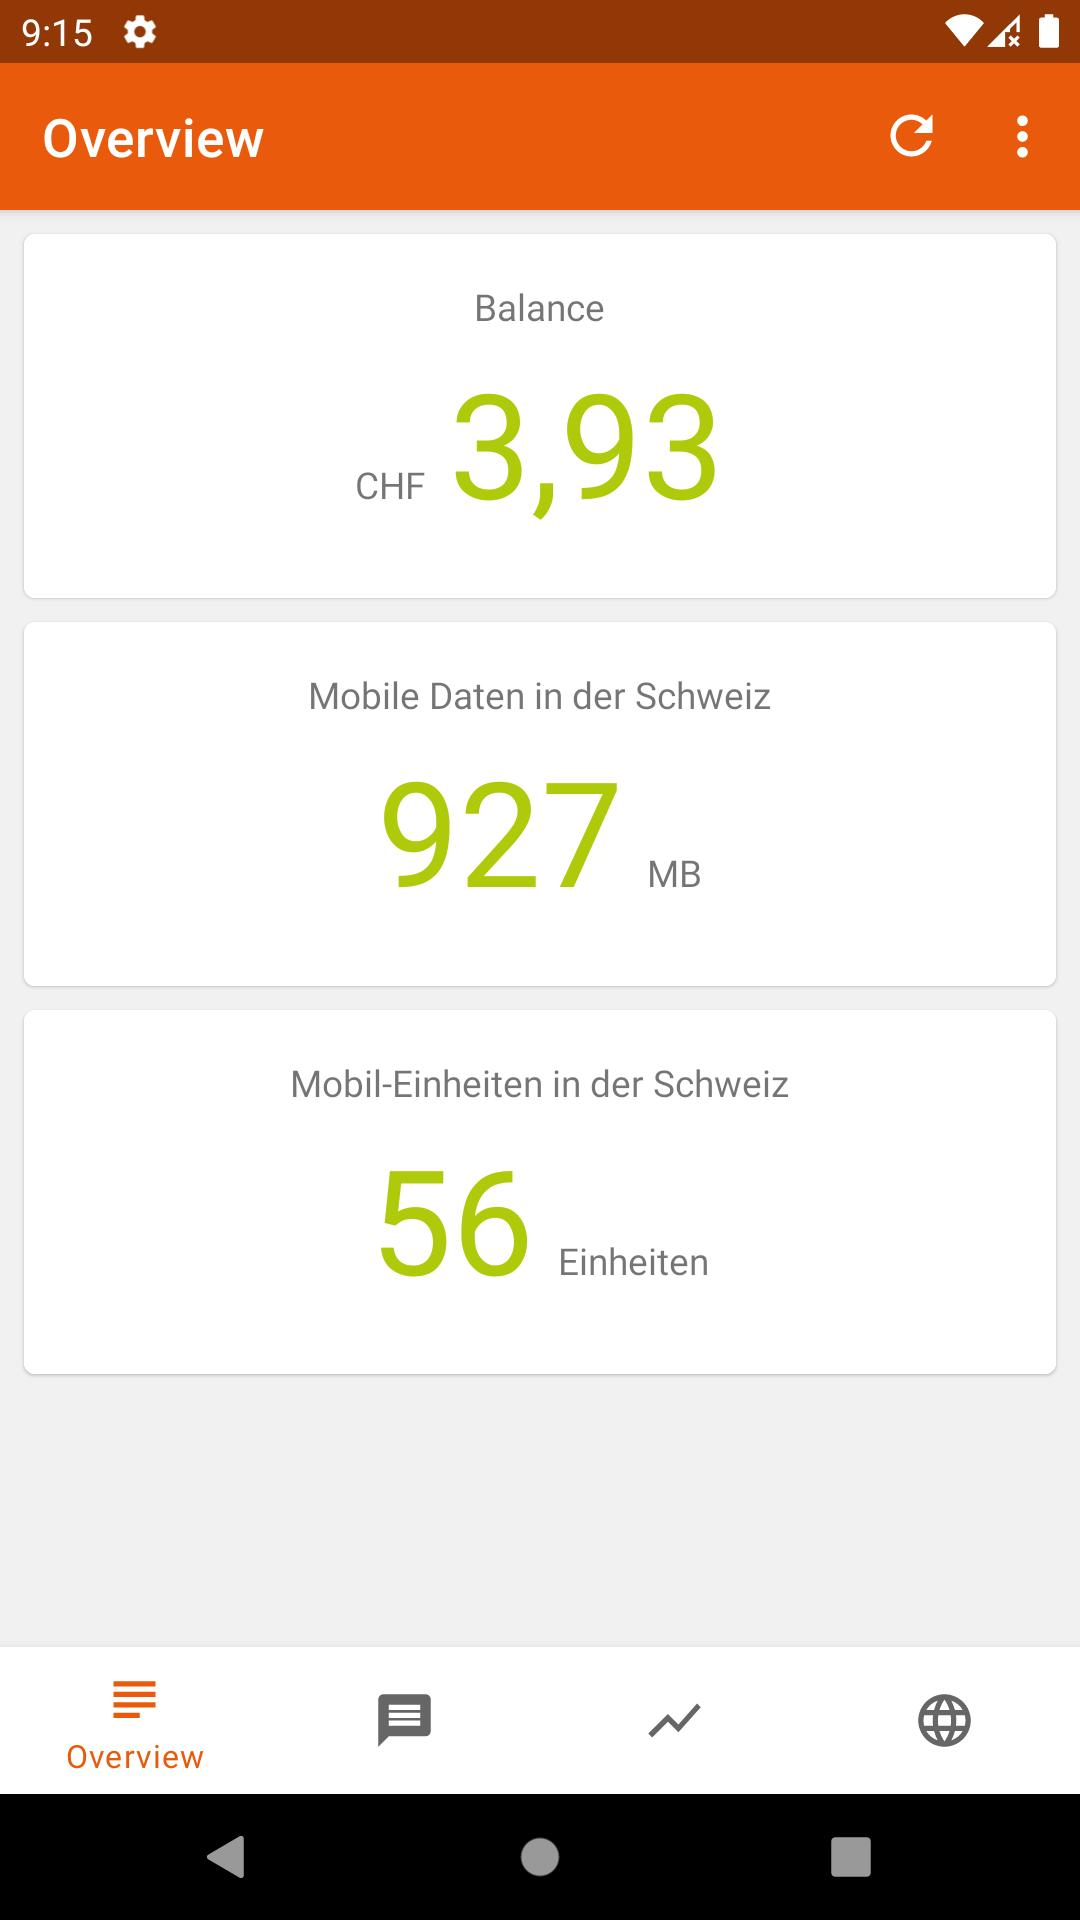 Coop Mobile Prepaid Inofficial Balance Status For Android Apk Download